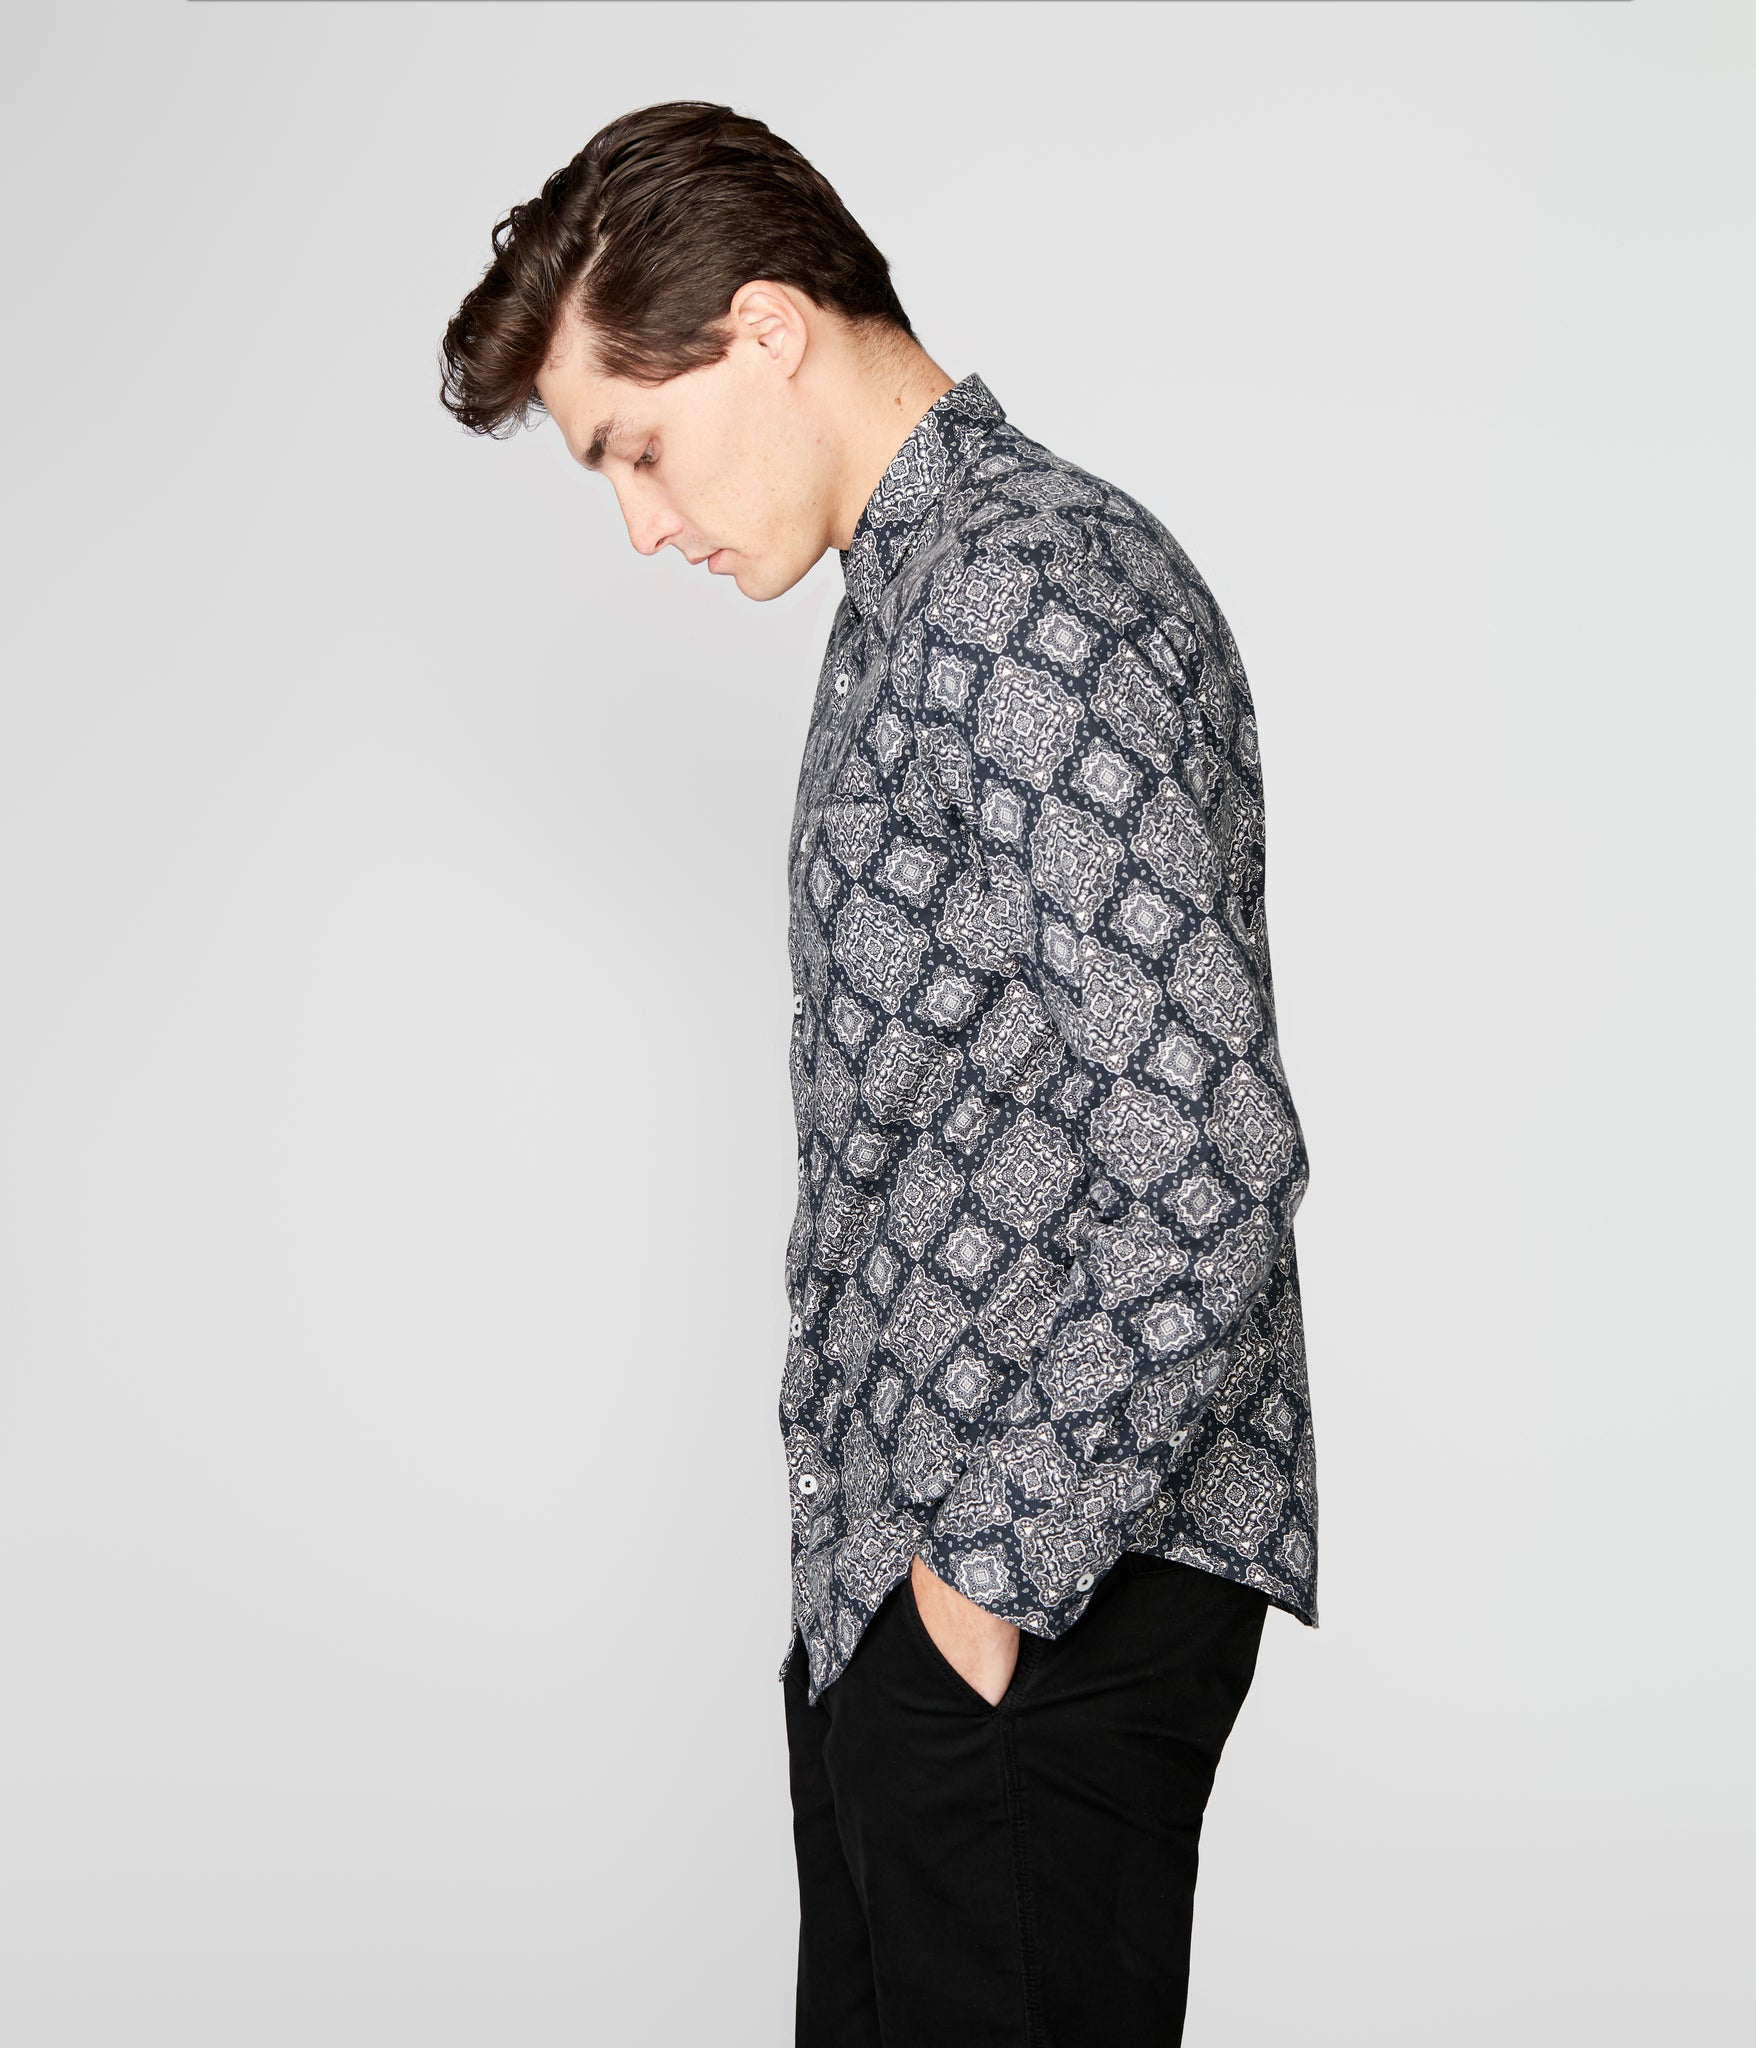 On-Point Print Shirt - Black Medallion Paisley